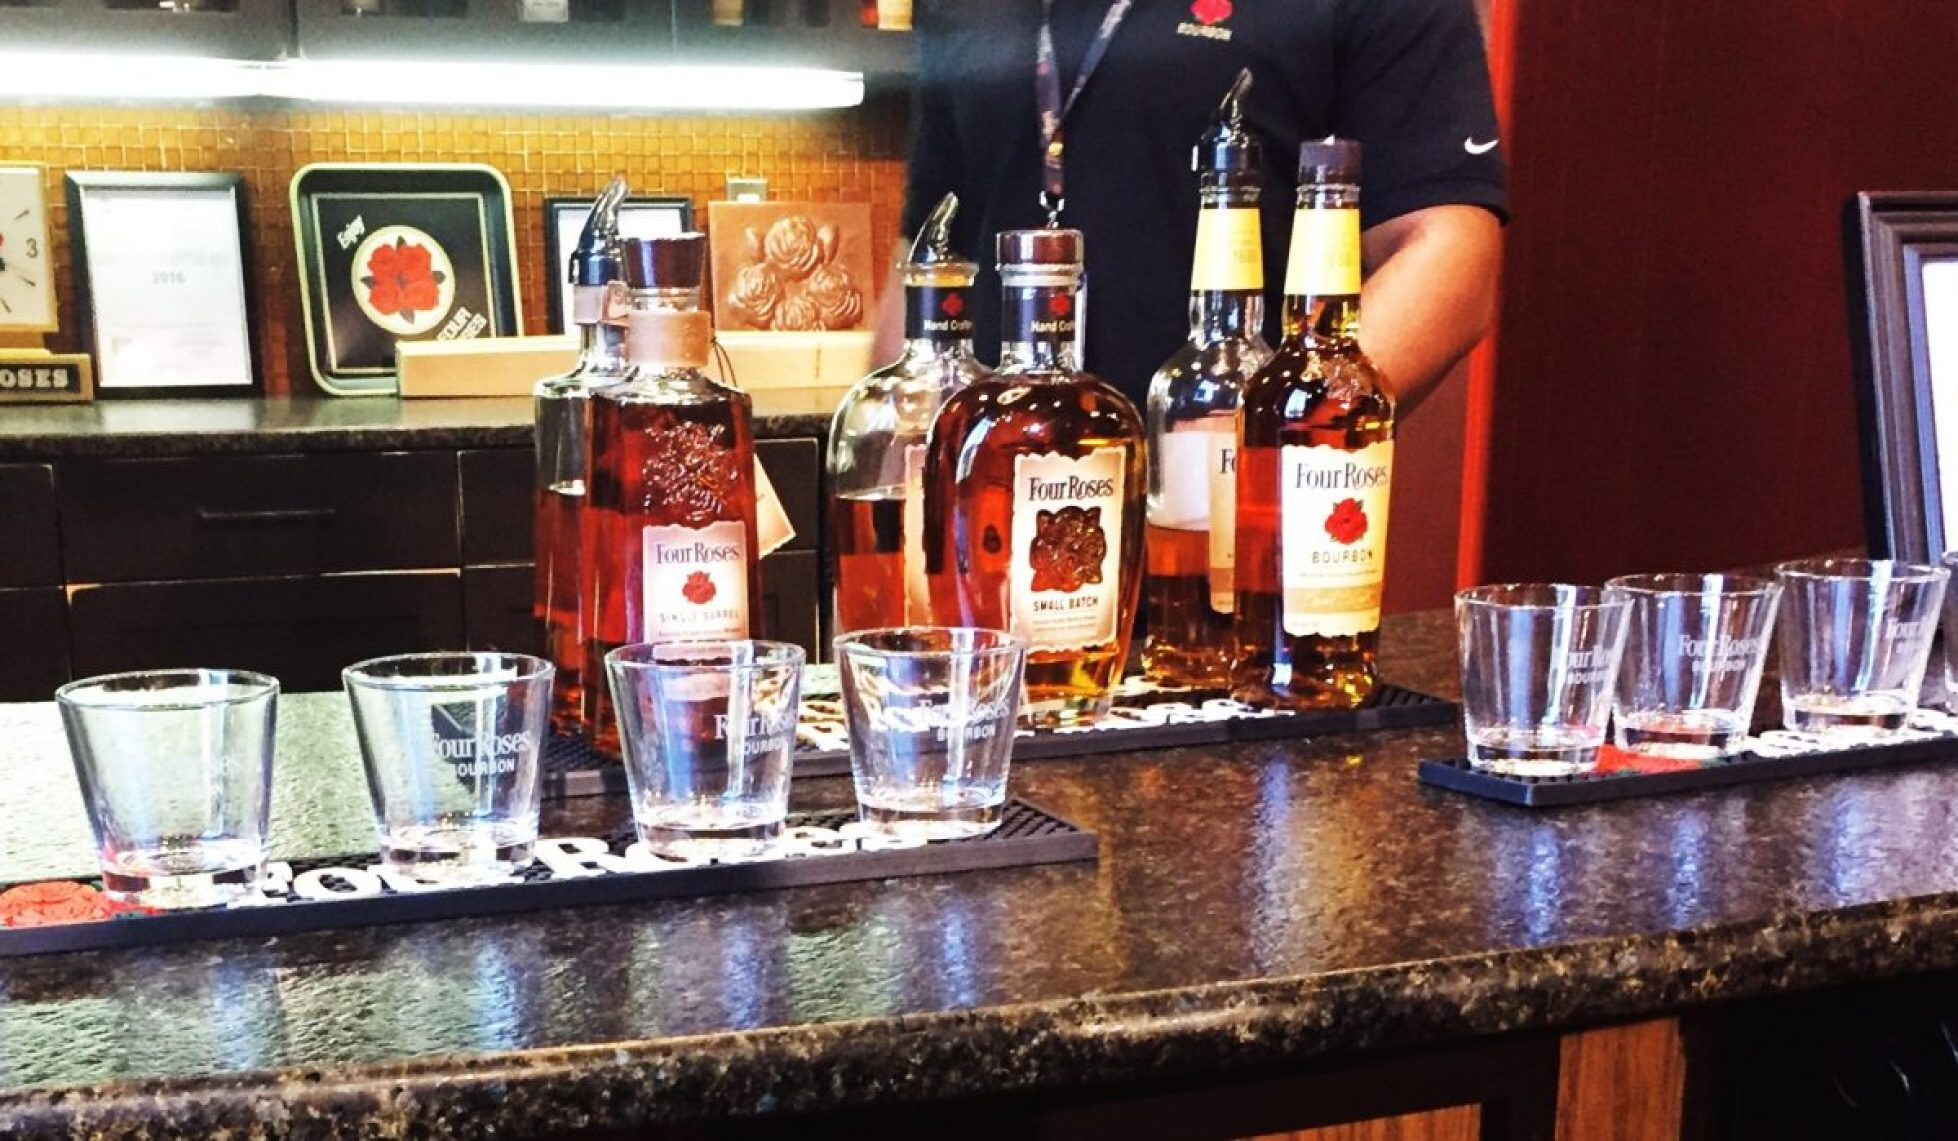 The tasting bar at Four Roses